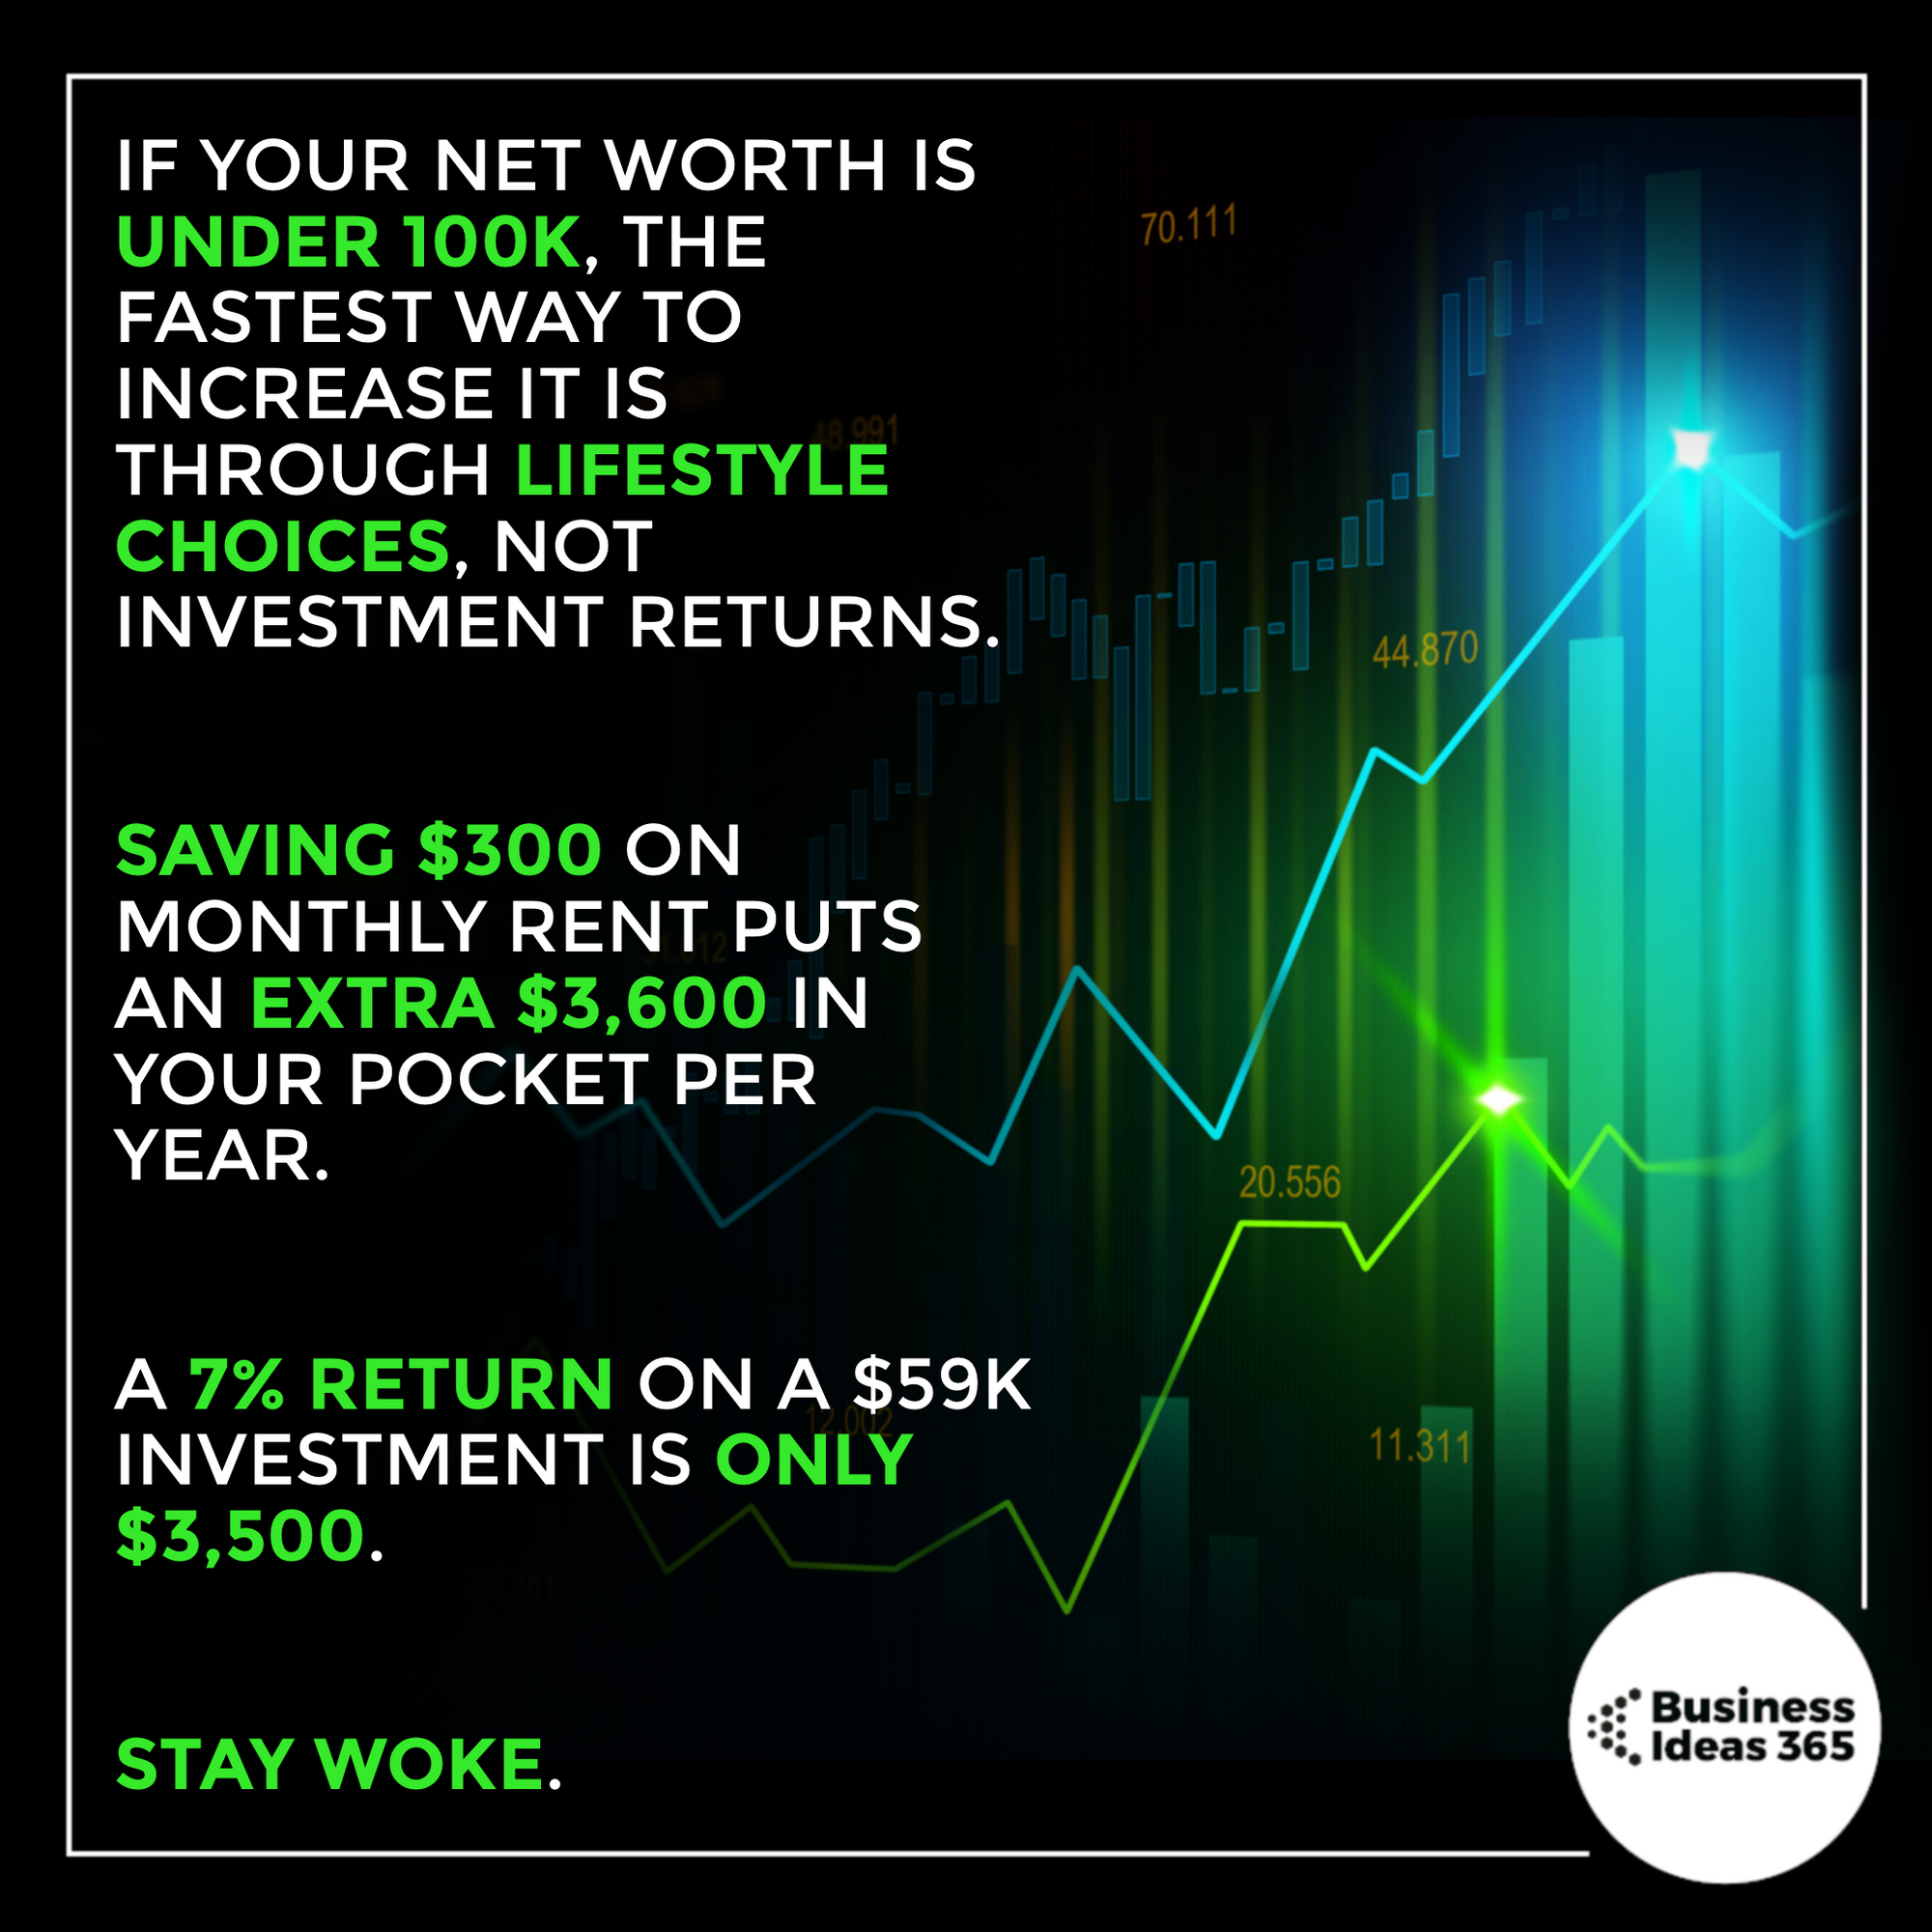 If Your Net Worth Is Under 100k Earn Money Online Fast Finance Investing Best Business Ideas